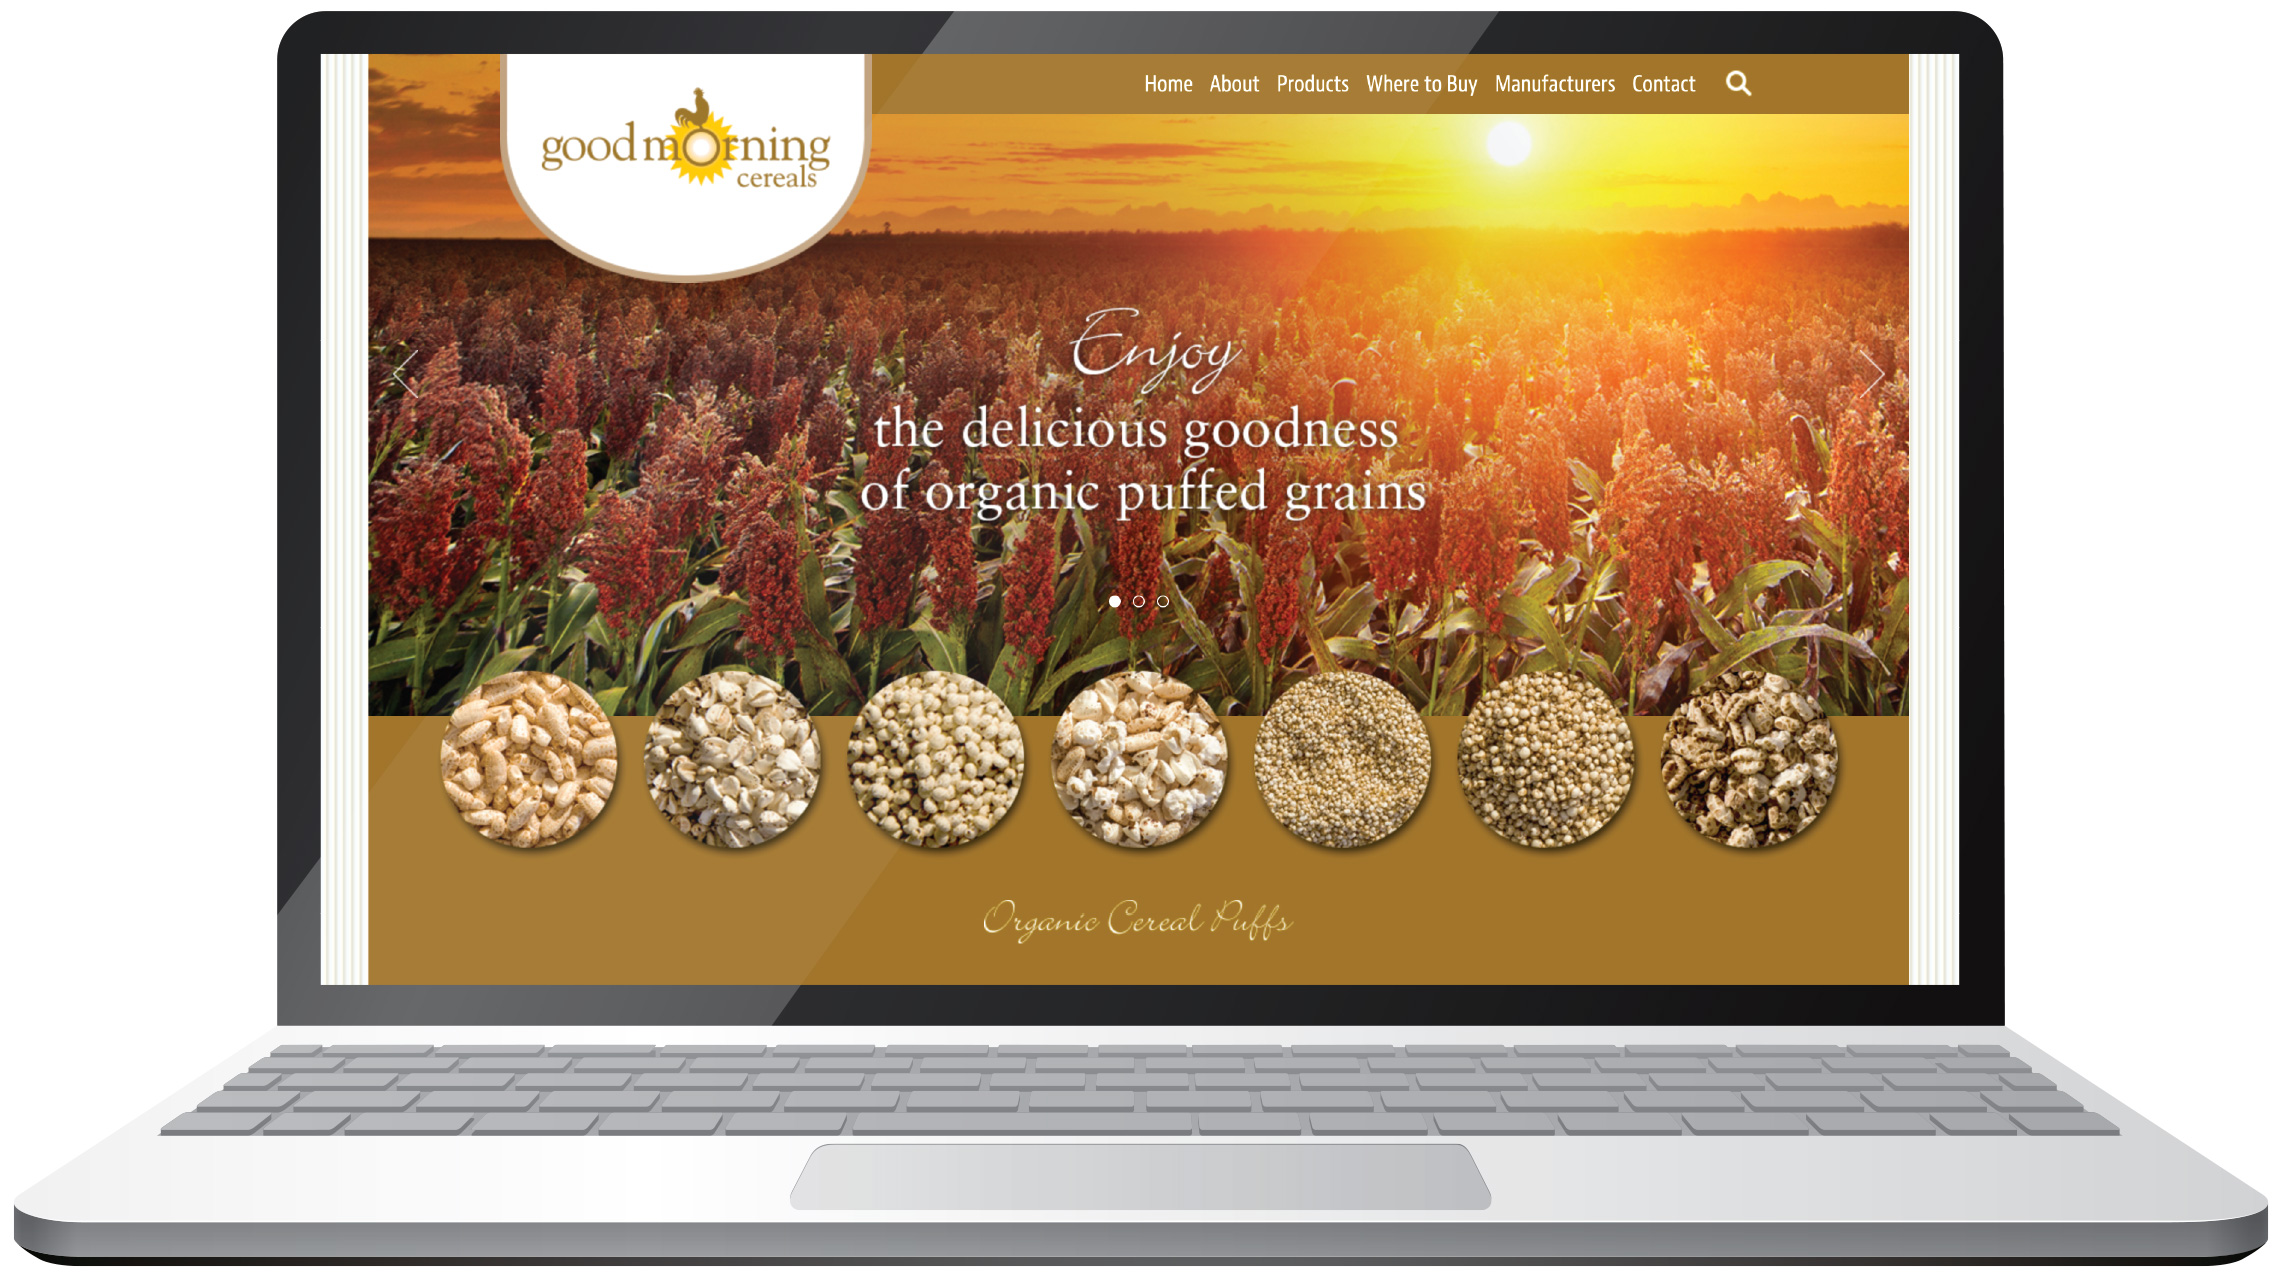 Good Morning Cereals website